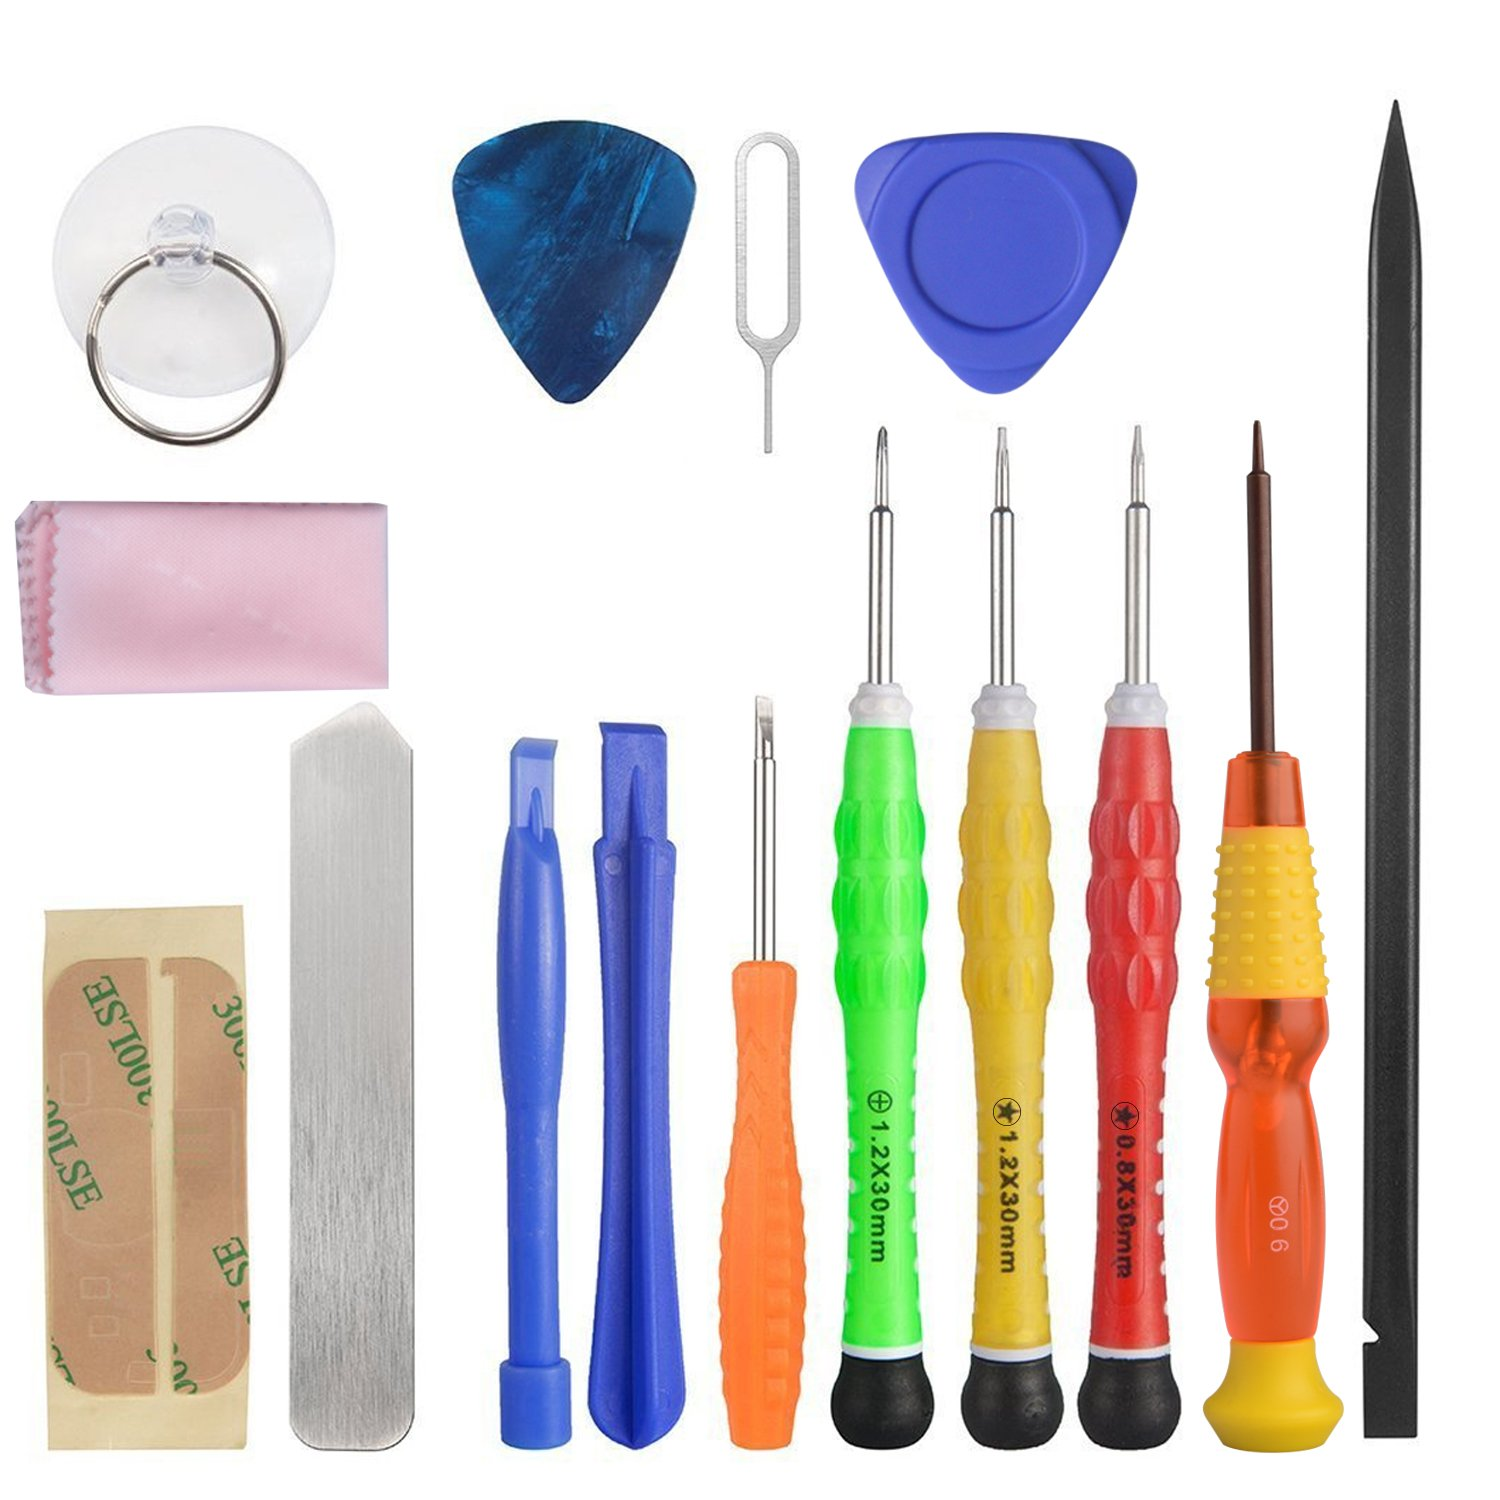 Tools One Or 5pcs Small Screwdriver 0.8 Five-star For Mobile Phone Toy Teardown Repair Tool 2 Mm Hand Tools